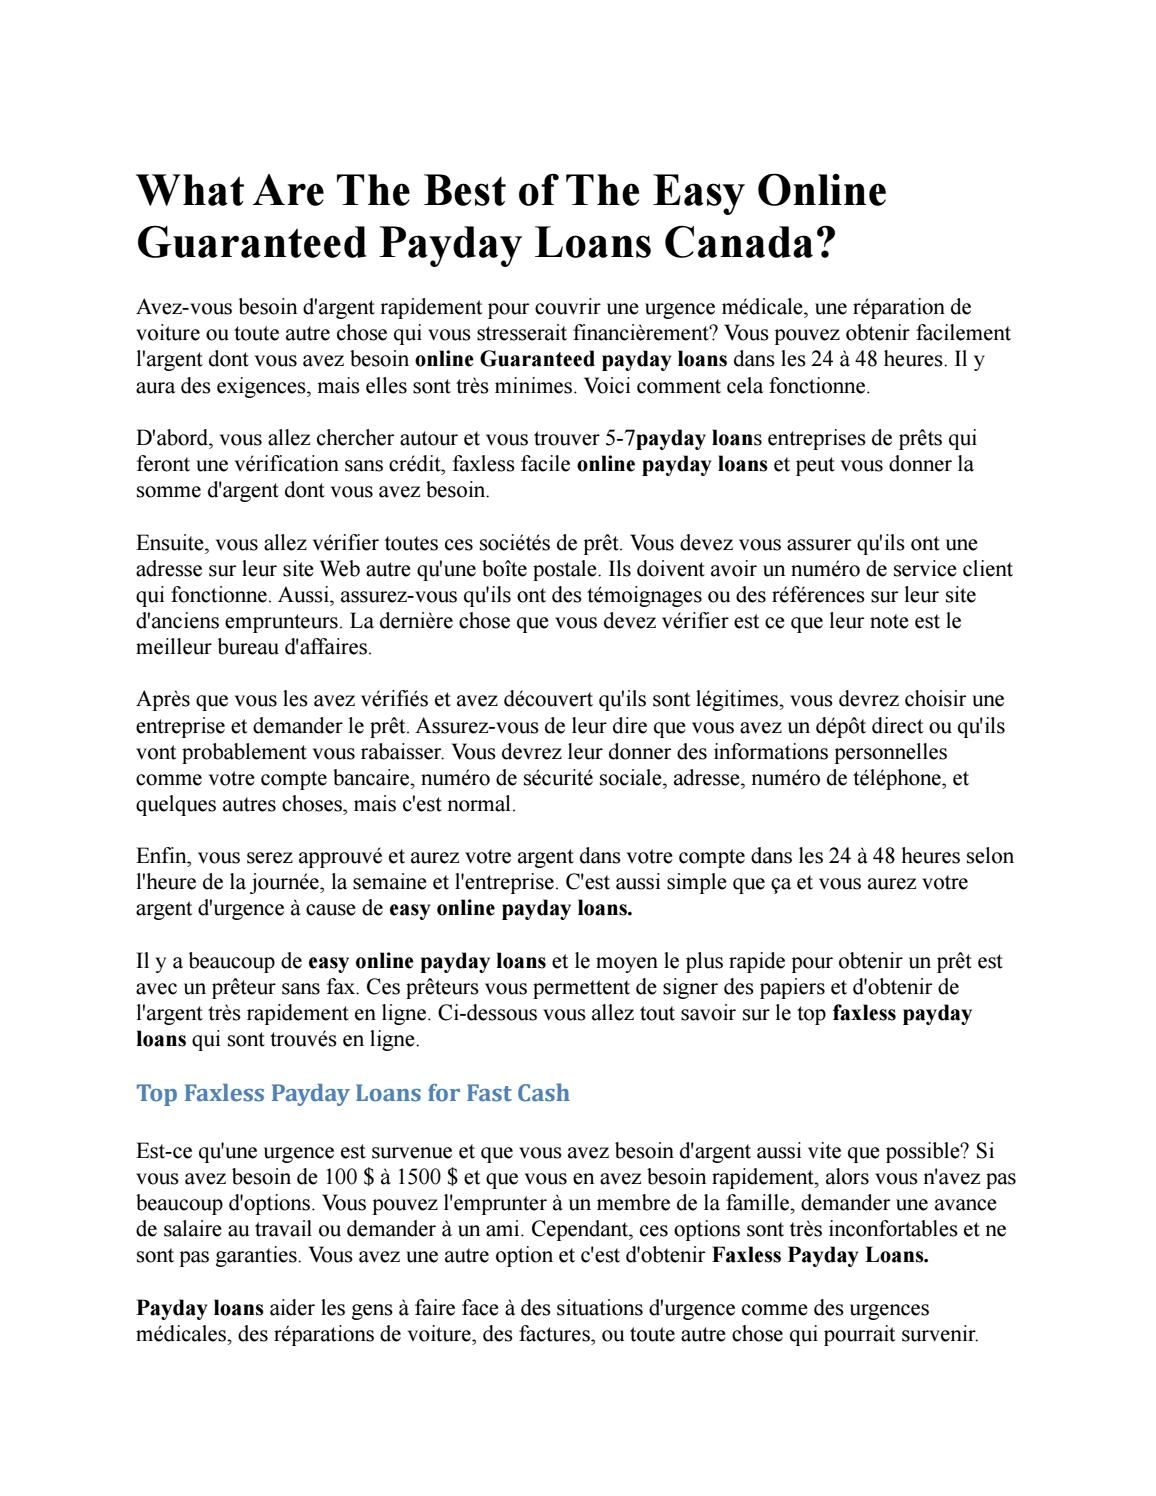 Payday loans midland ontario